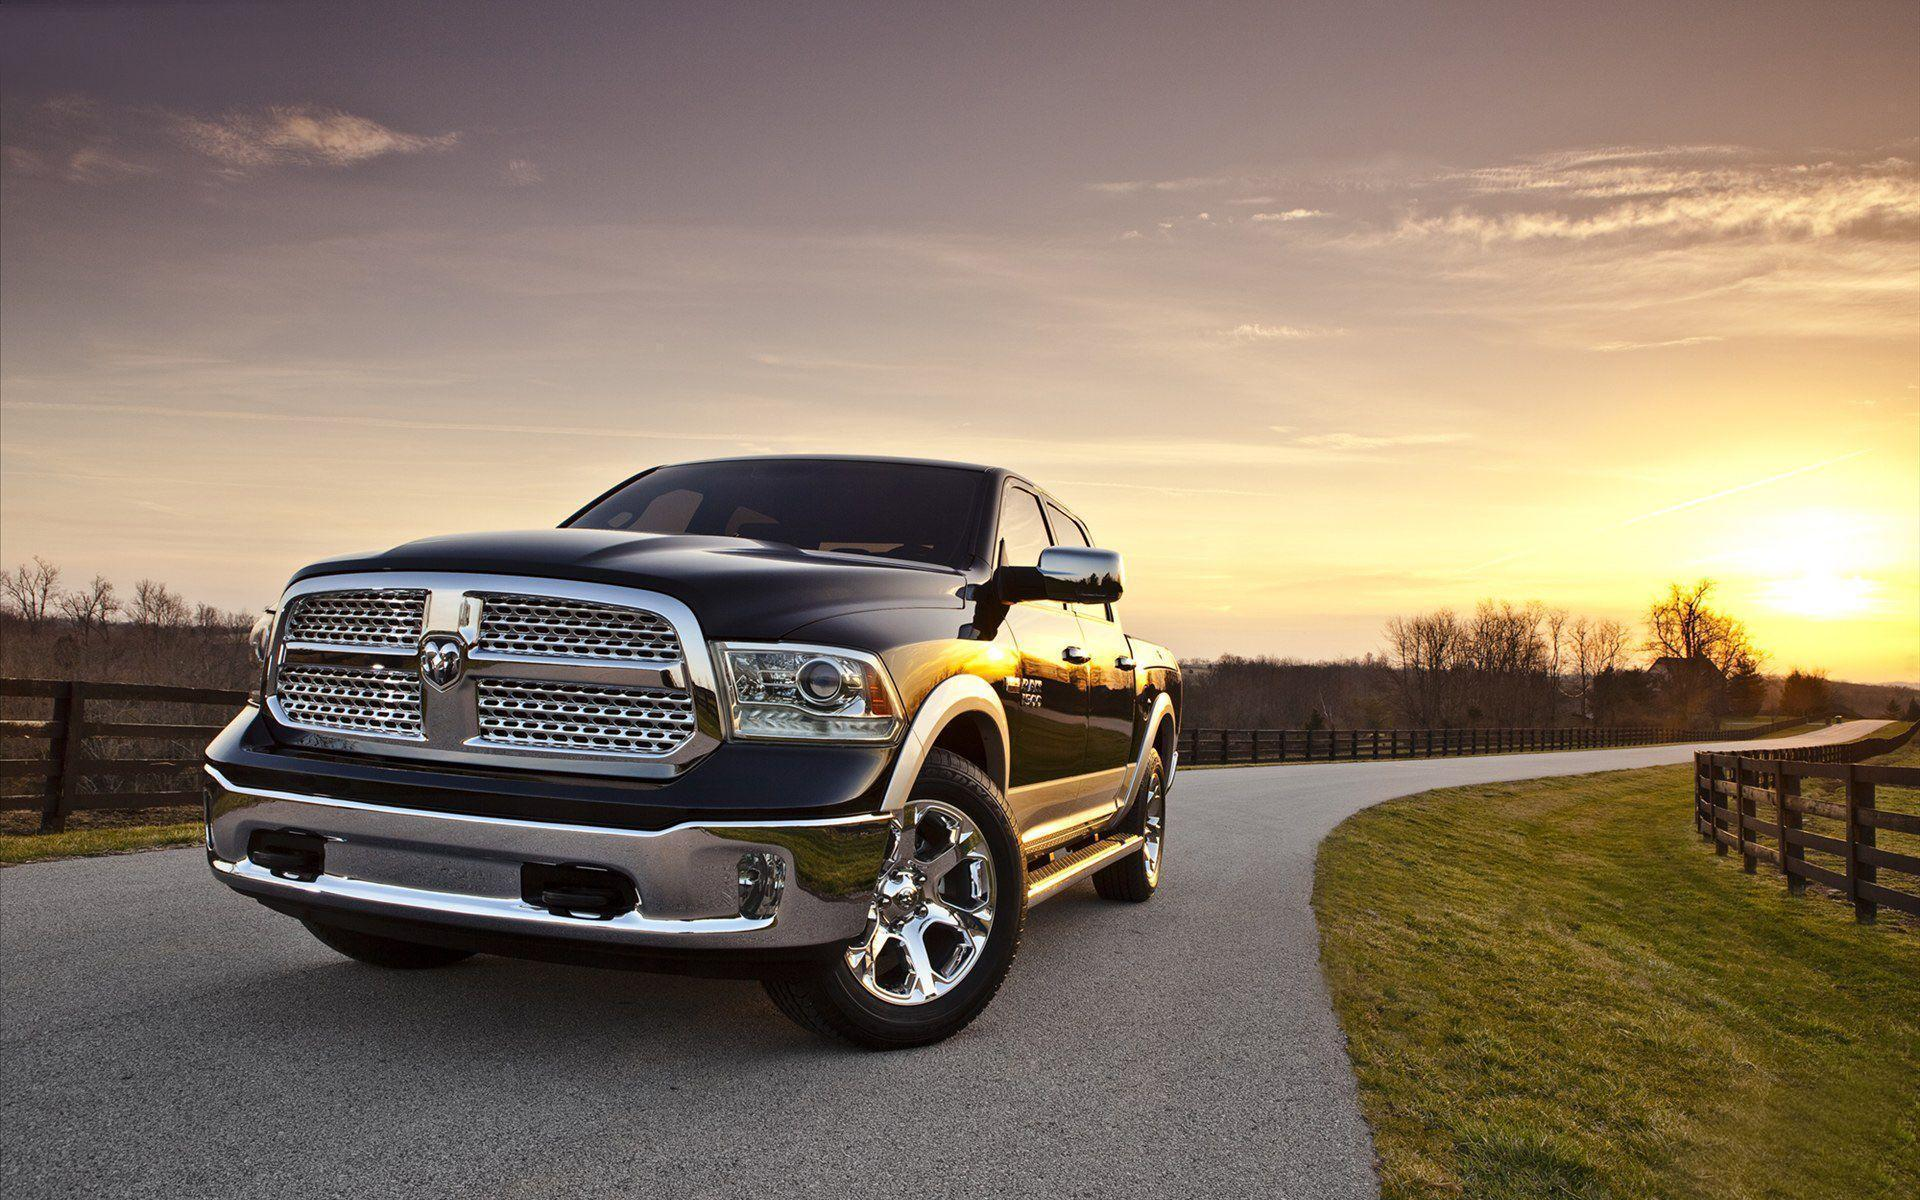 Dodge Ram Wallpapers Top Free Dodge Ram Backgrounds